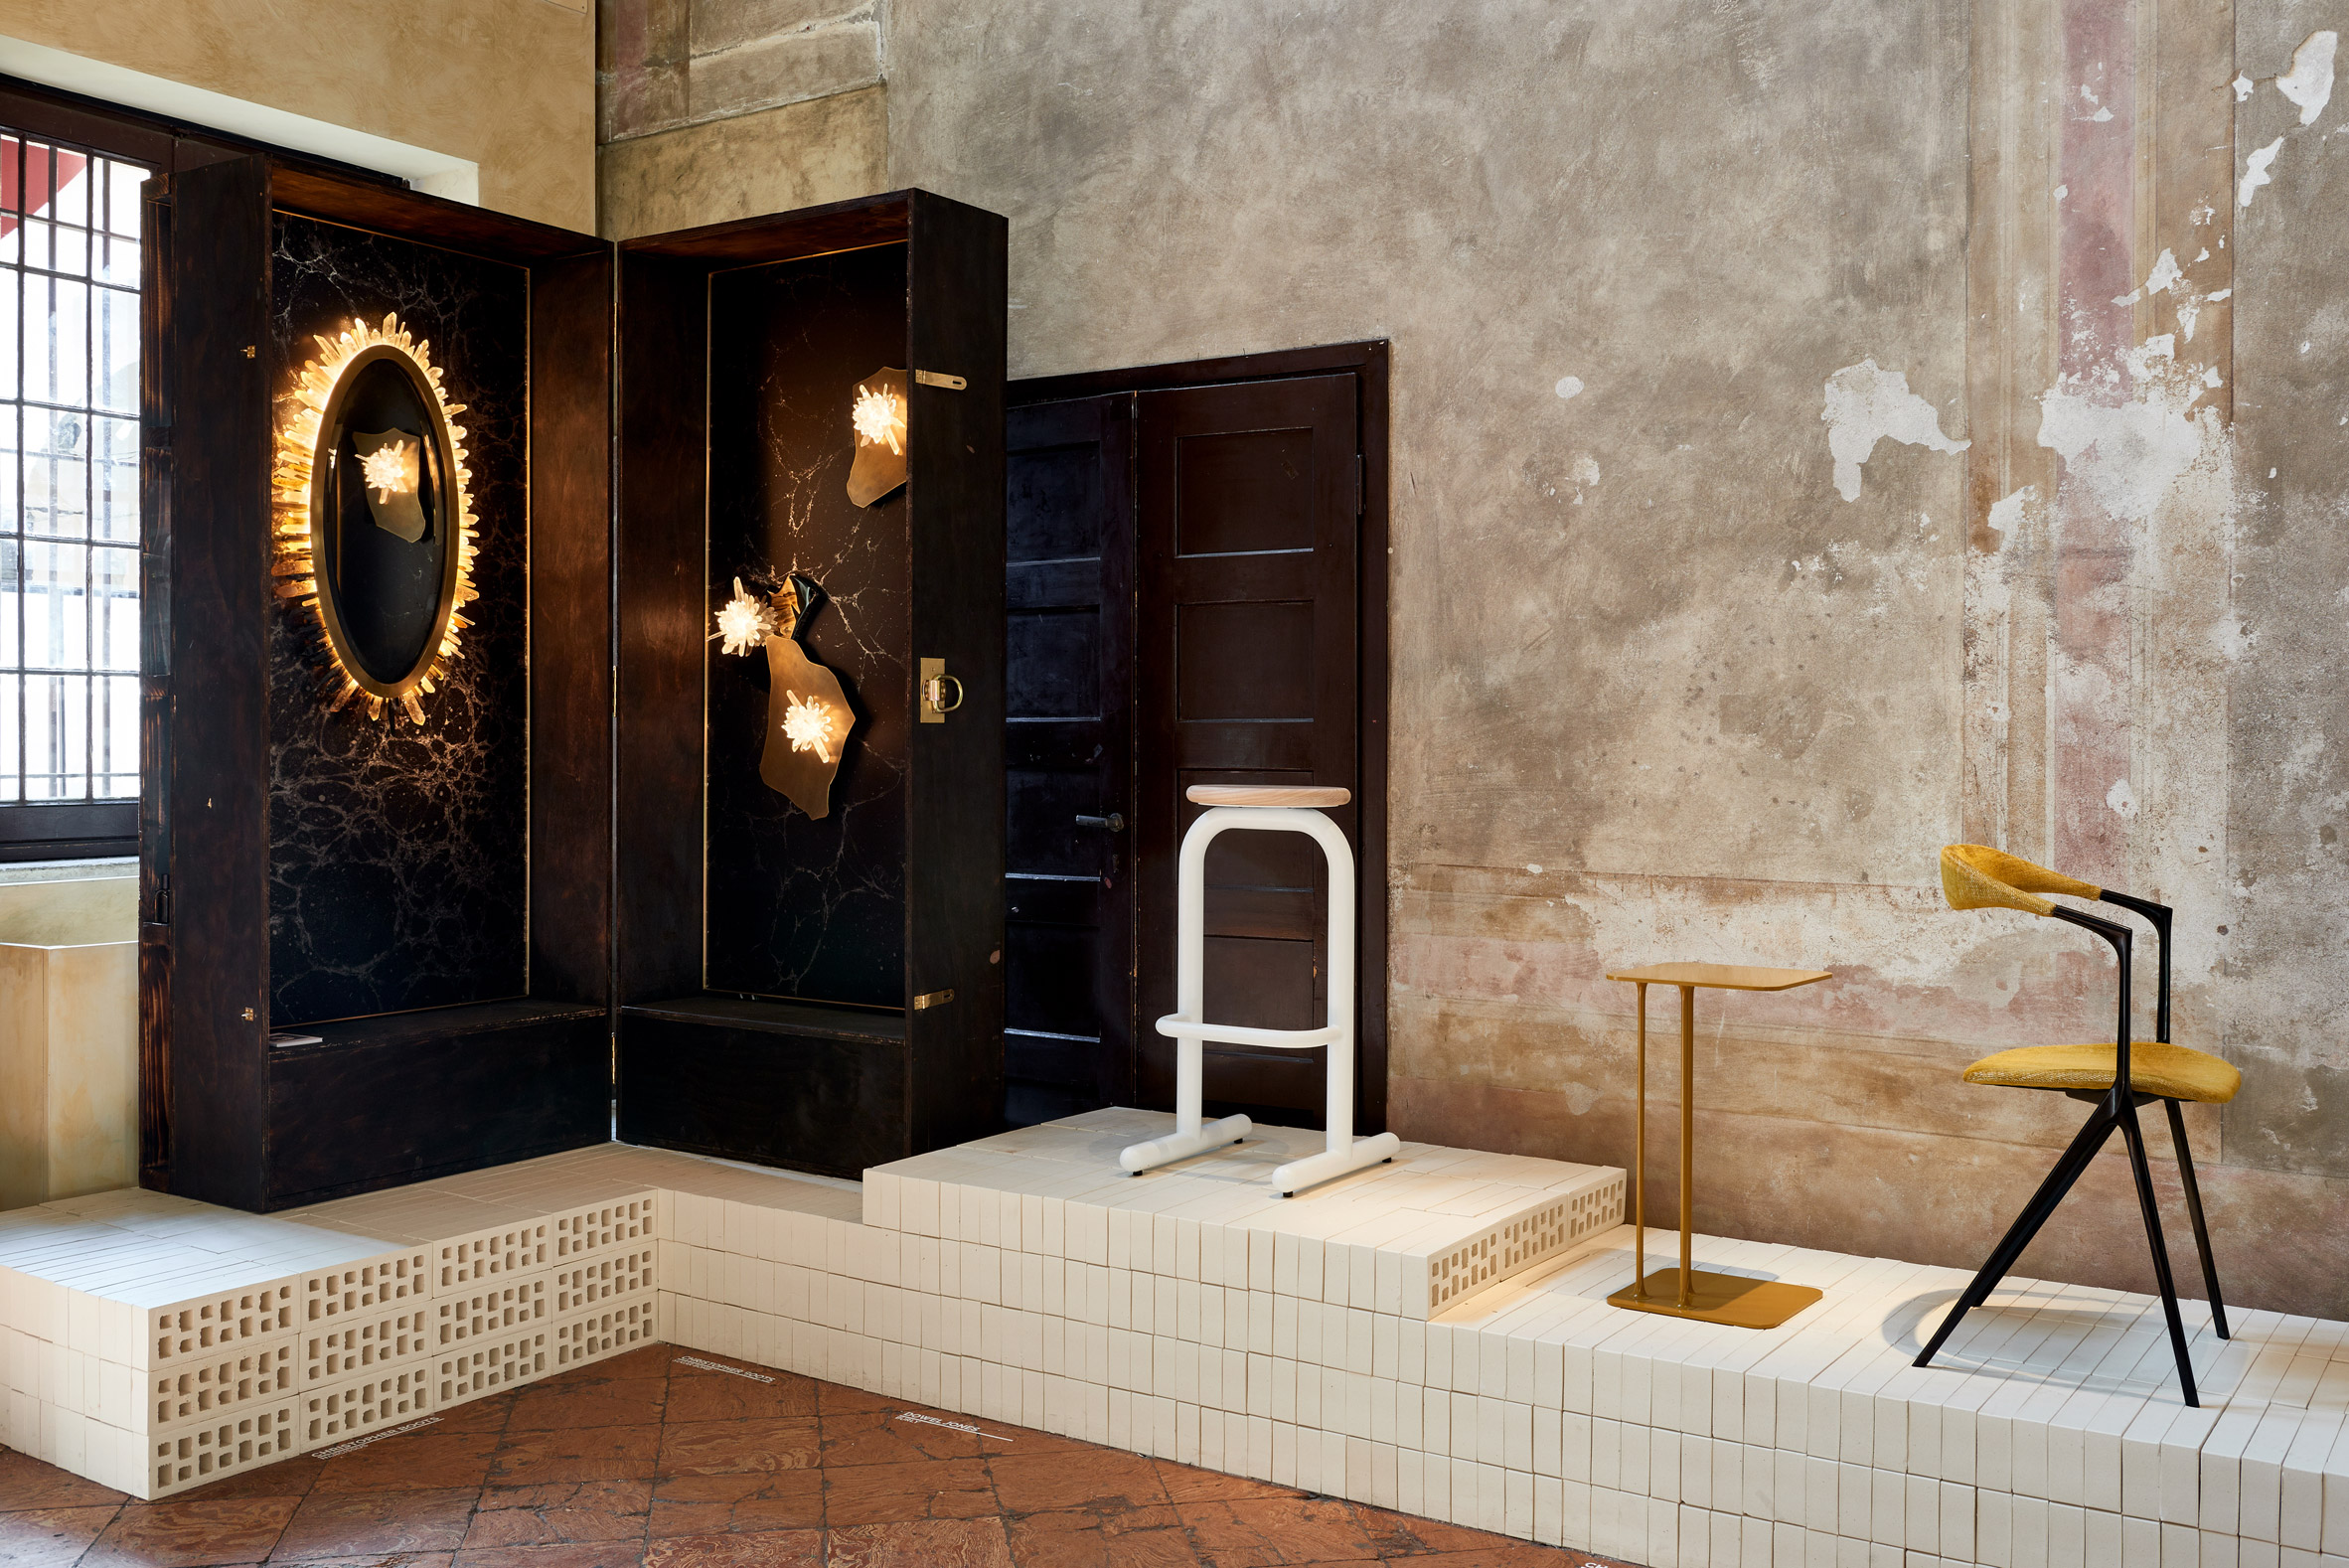 milan-local-design-australian-designers-lighting-furniture_dezeen_2364_col_7